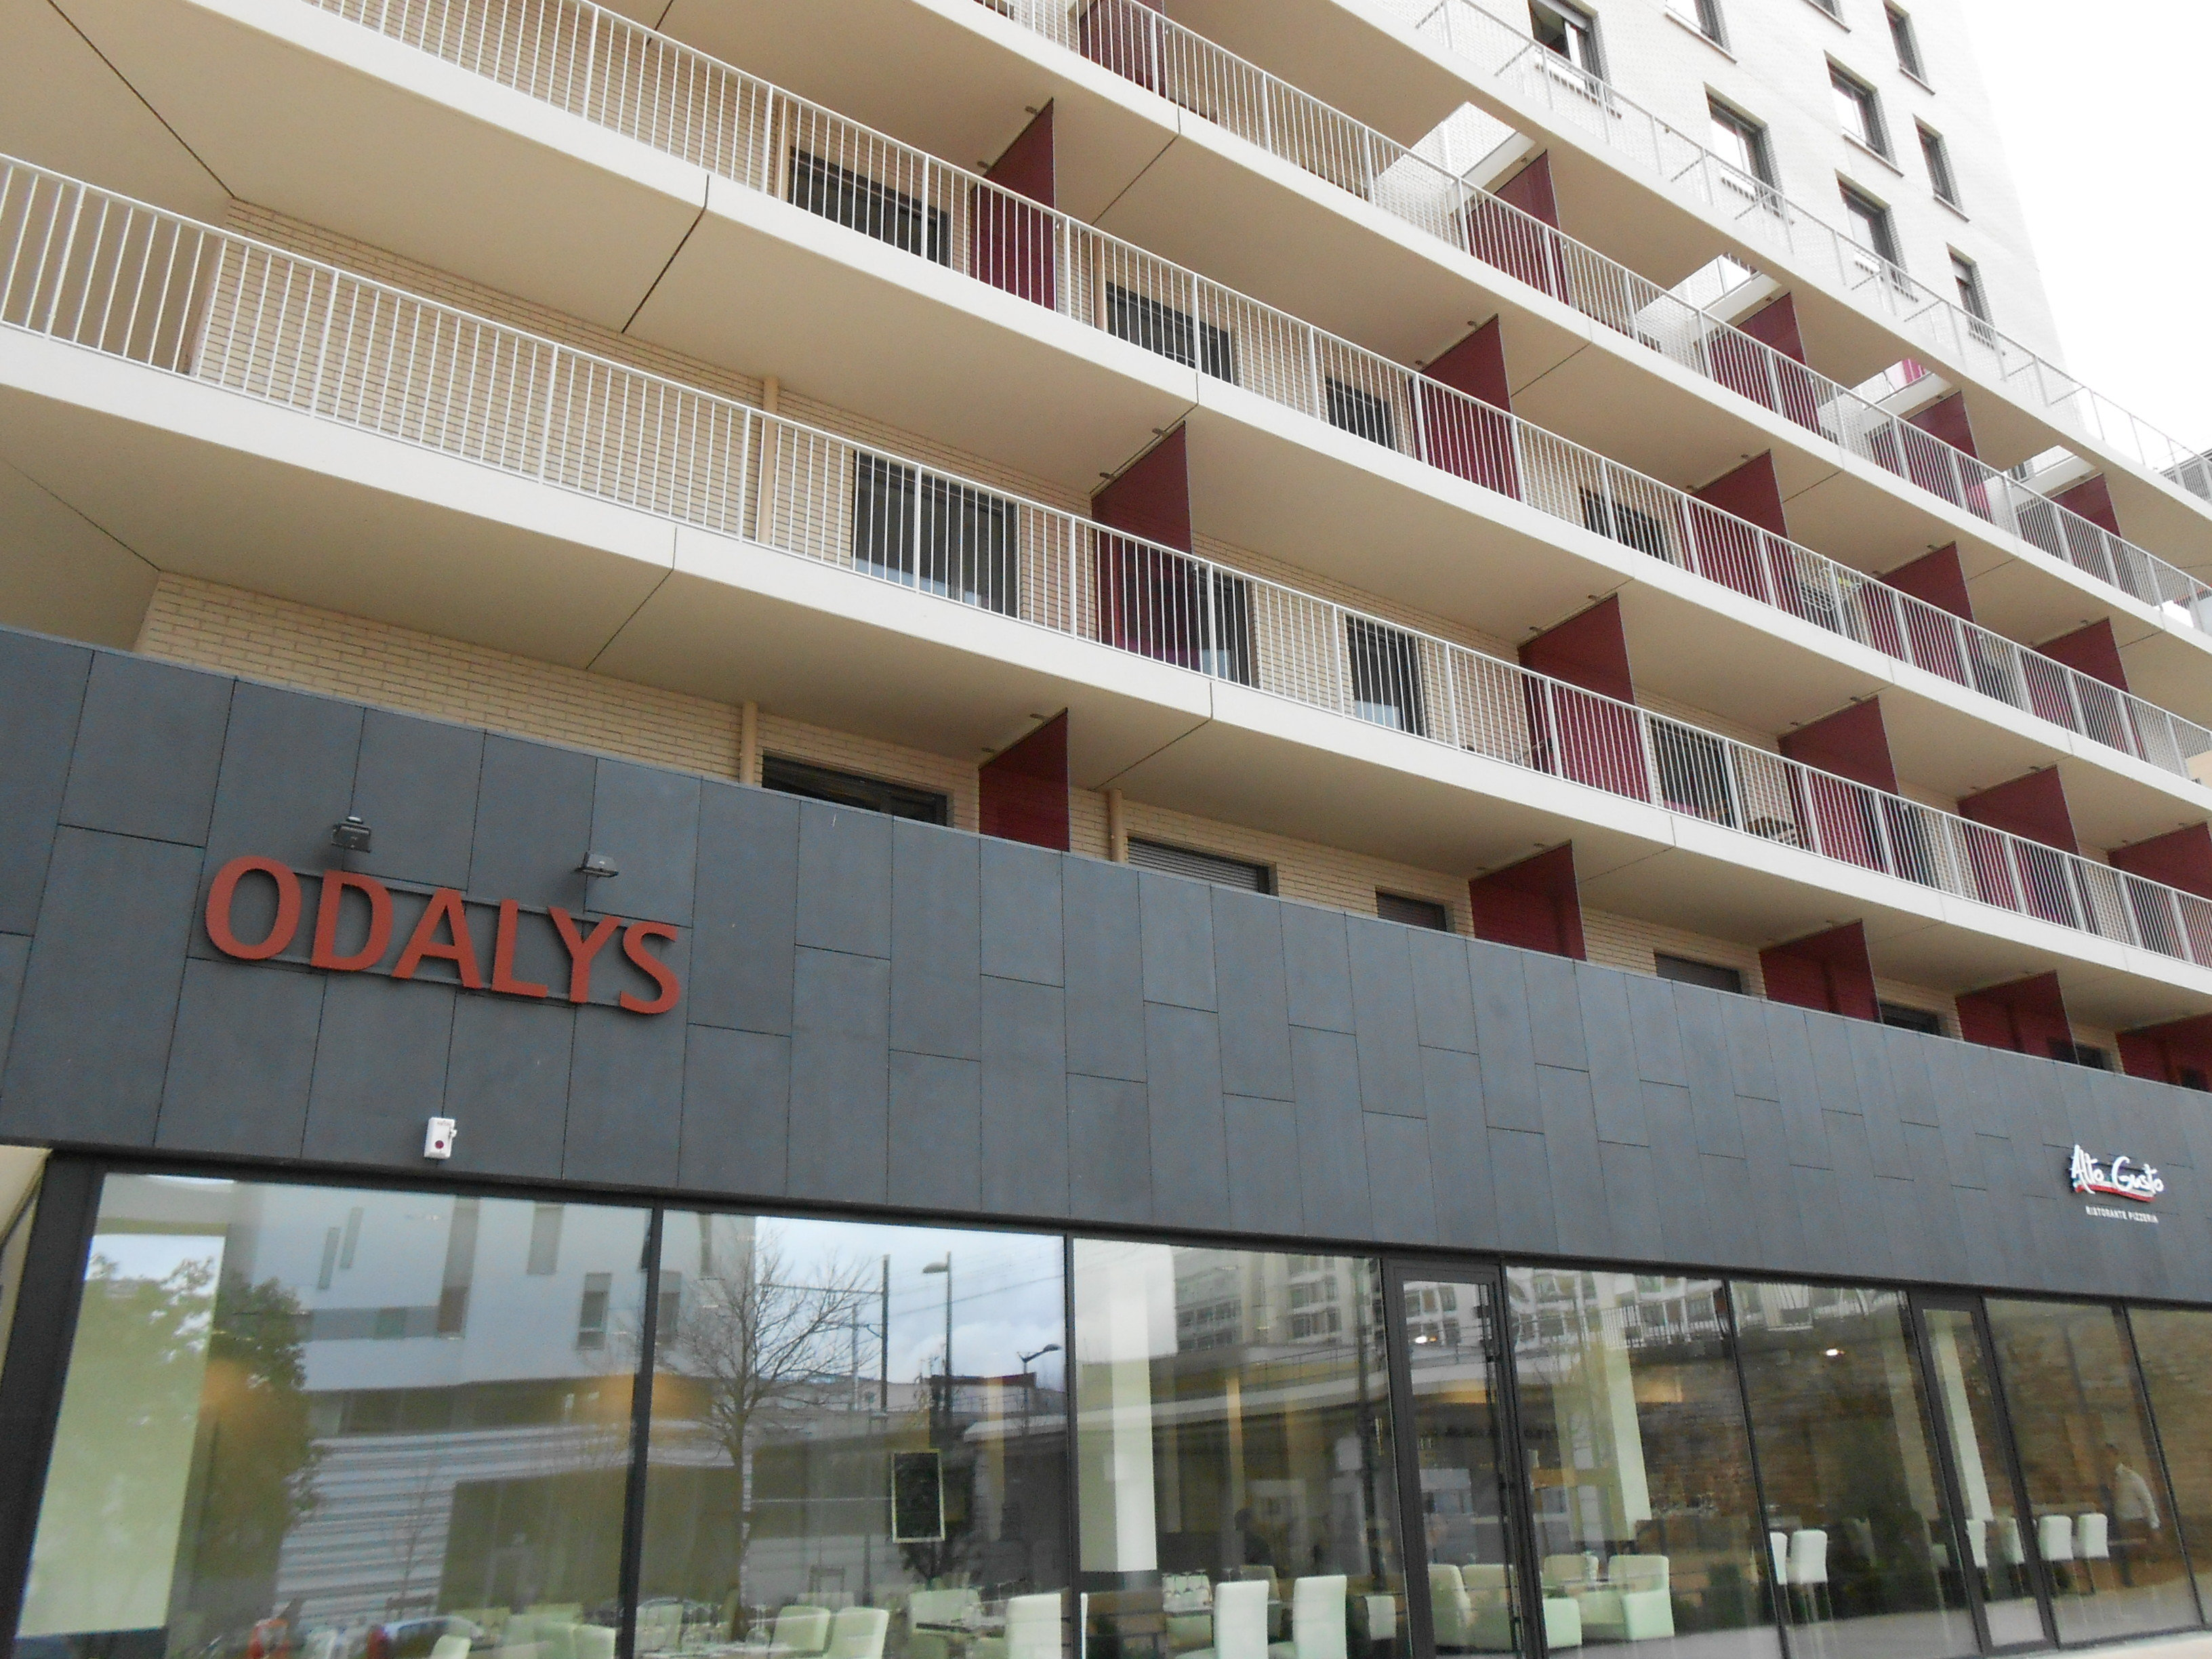 Appart hotel odalys lyon confluence r for Appart hotel odalys lyon